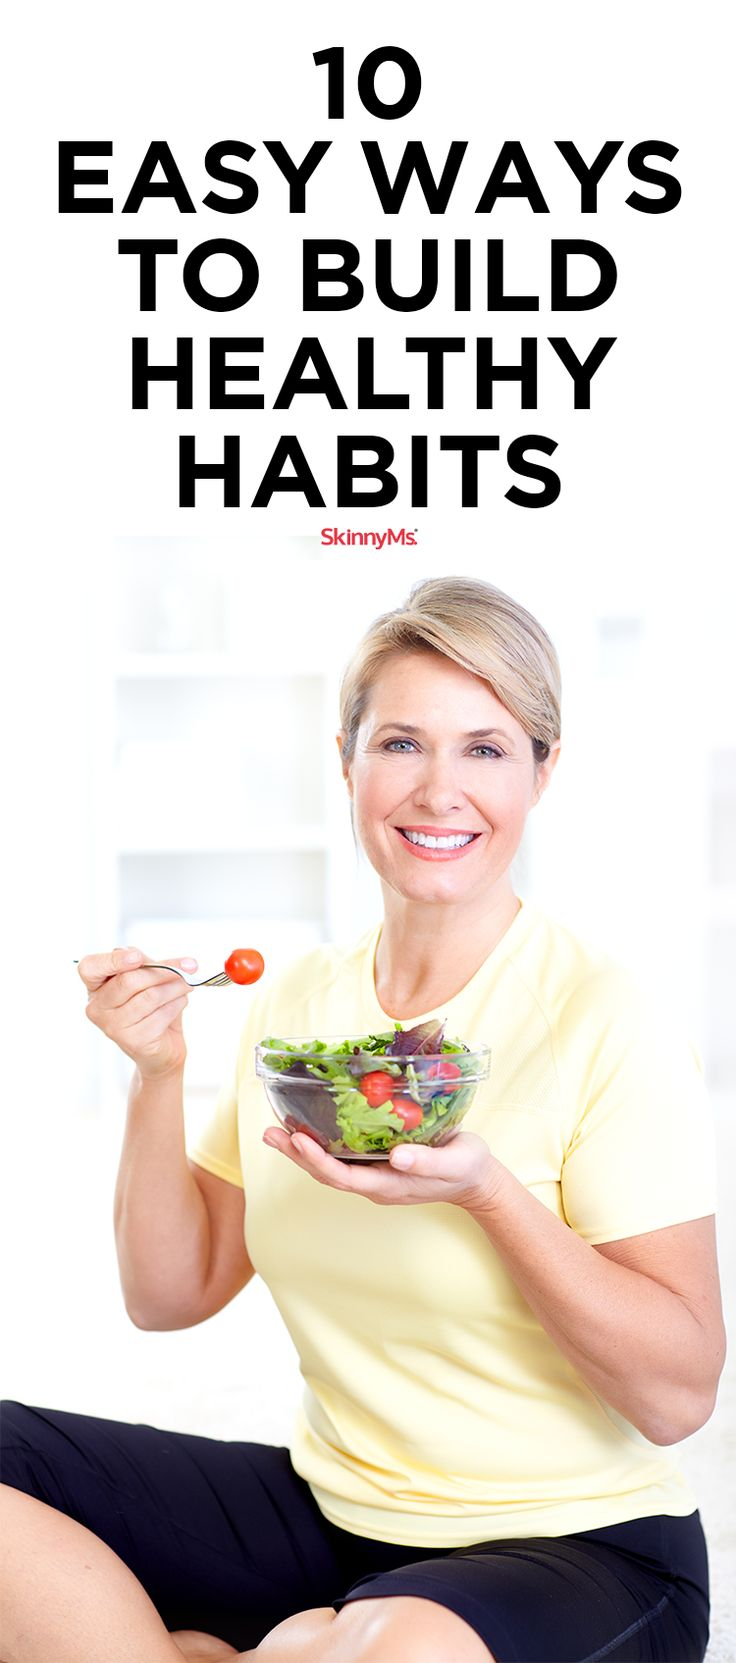 Do you want to learn more about ways to build healthy habits that will truly change your life? Check out these tools we've found the most helpful.